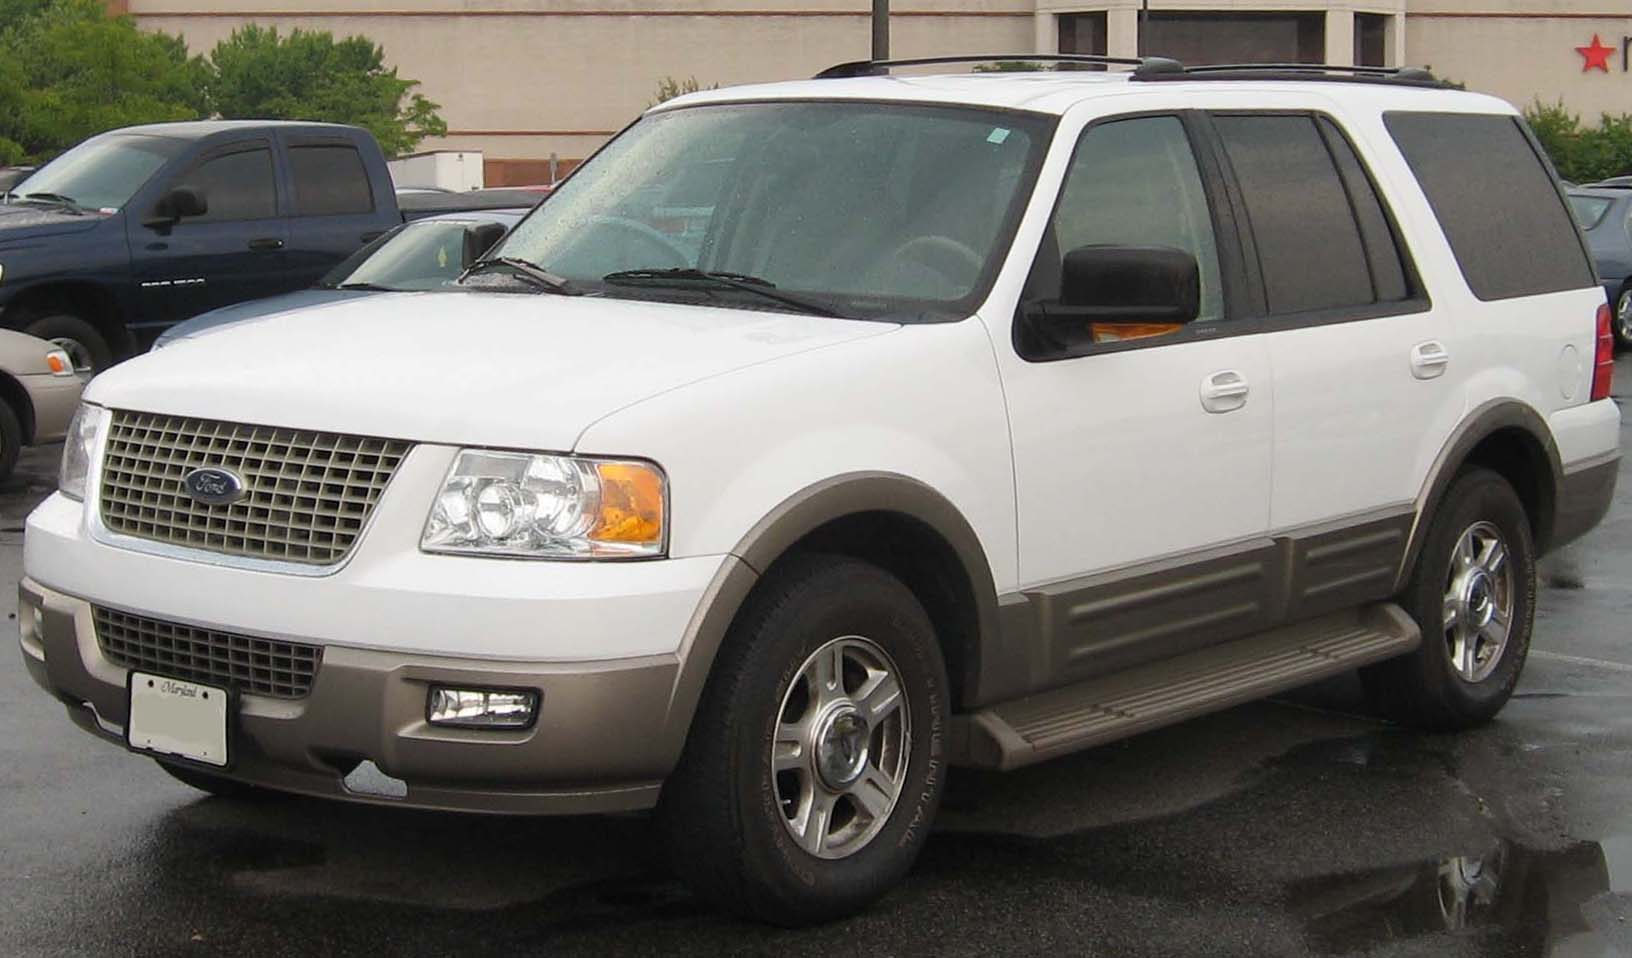 2001 Ford Expedition Eddie Bauer >> GTA SA Cars | SMCars.Net - Car Blueprints Forum